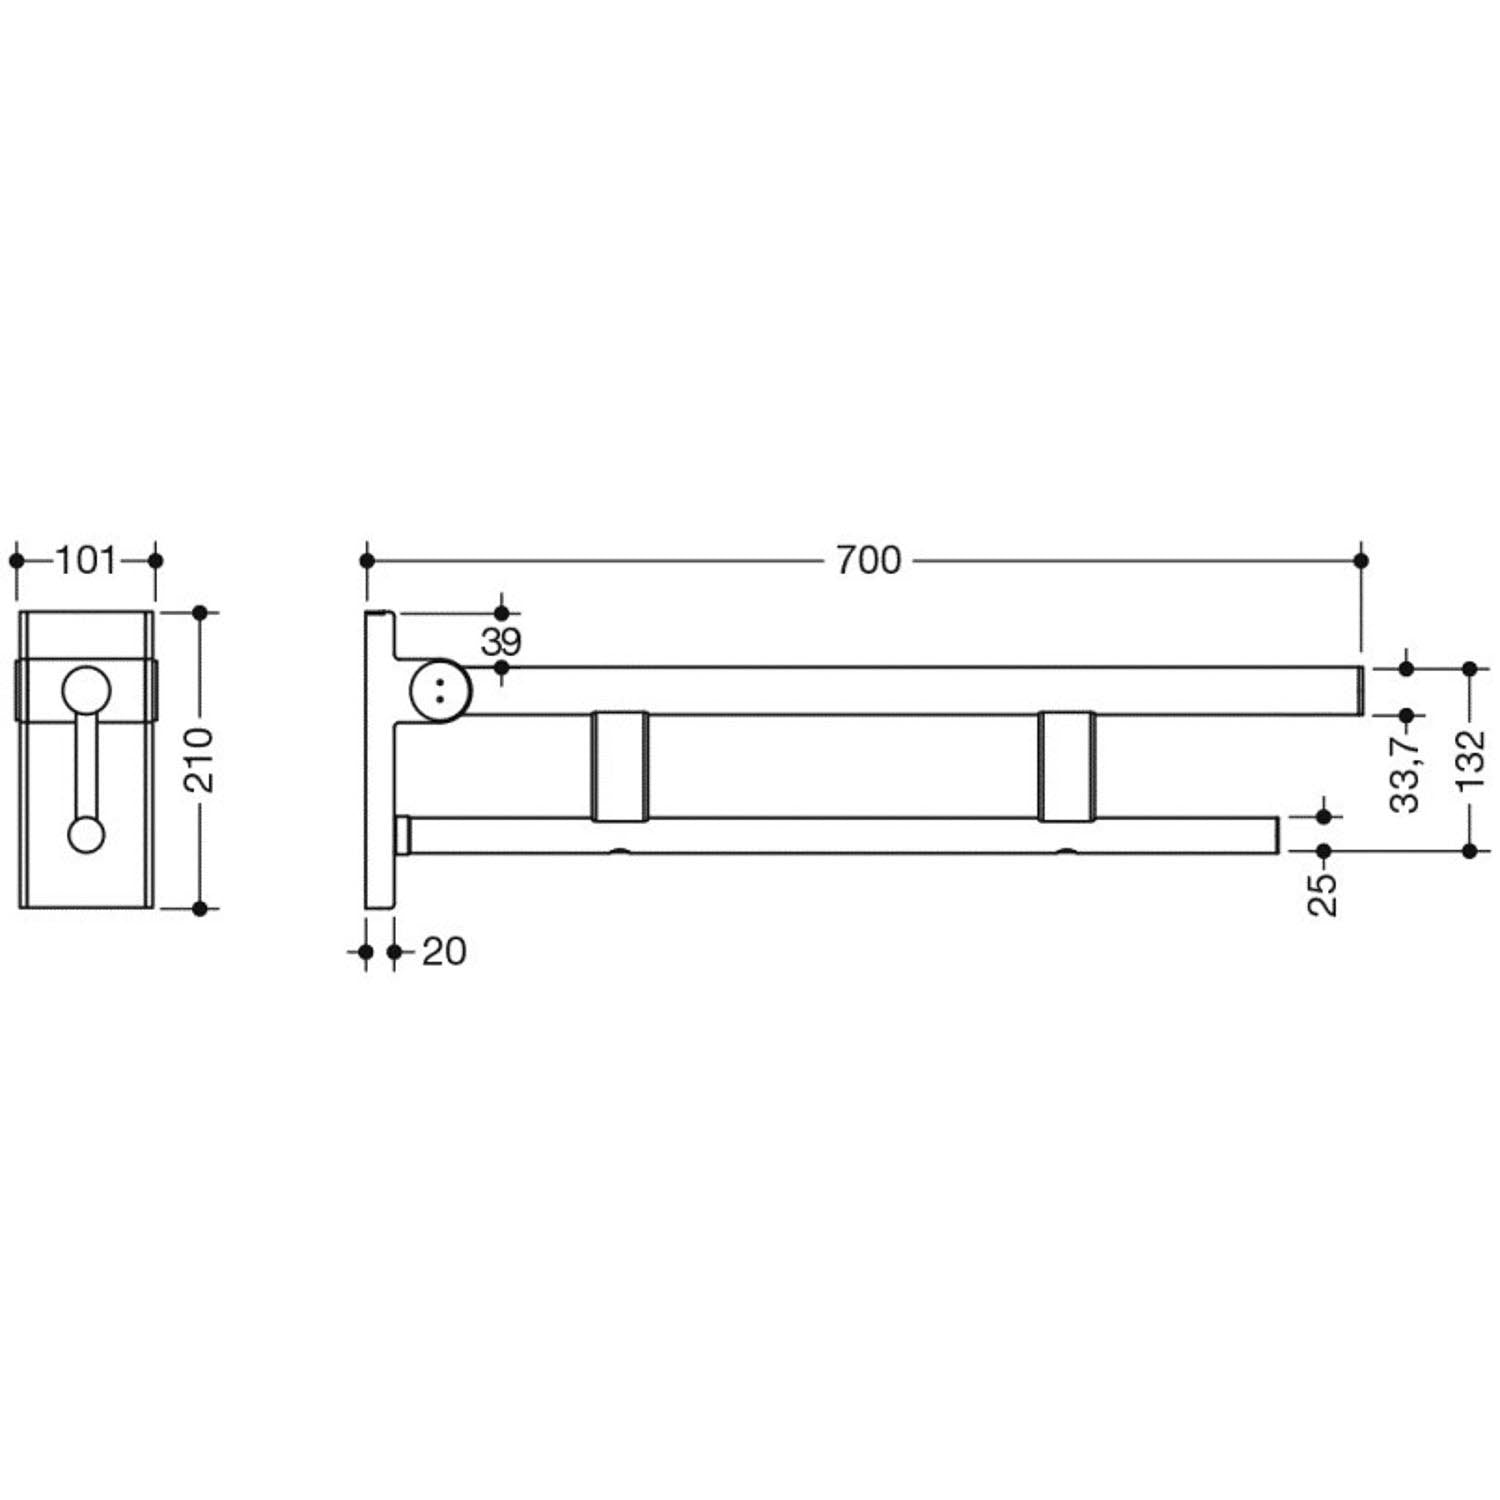 700mm Freestyle Removable Hinged Grab Rail with a satin steel finish dimensional drawing